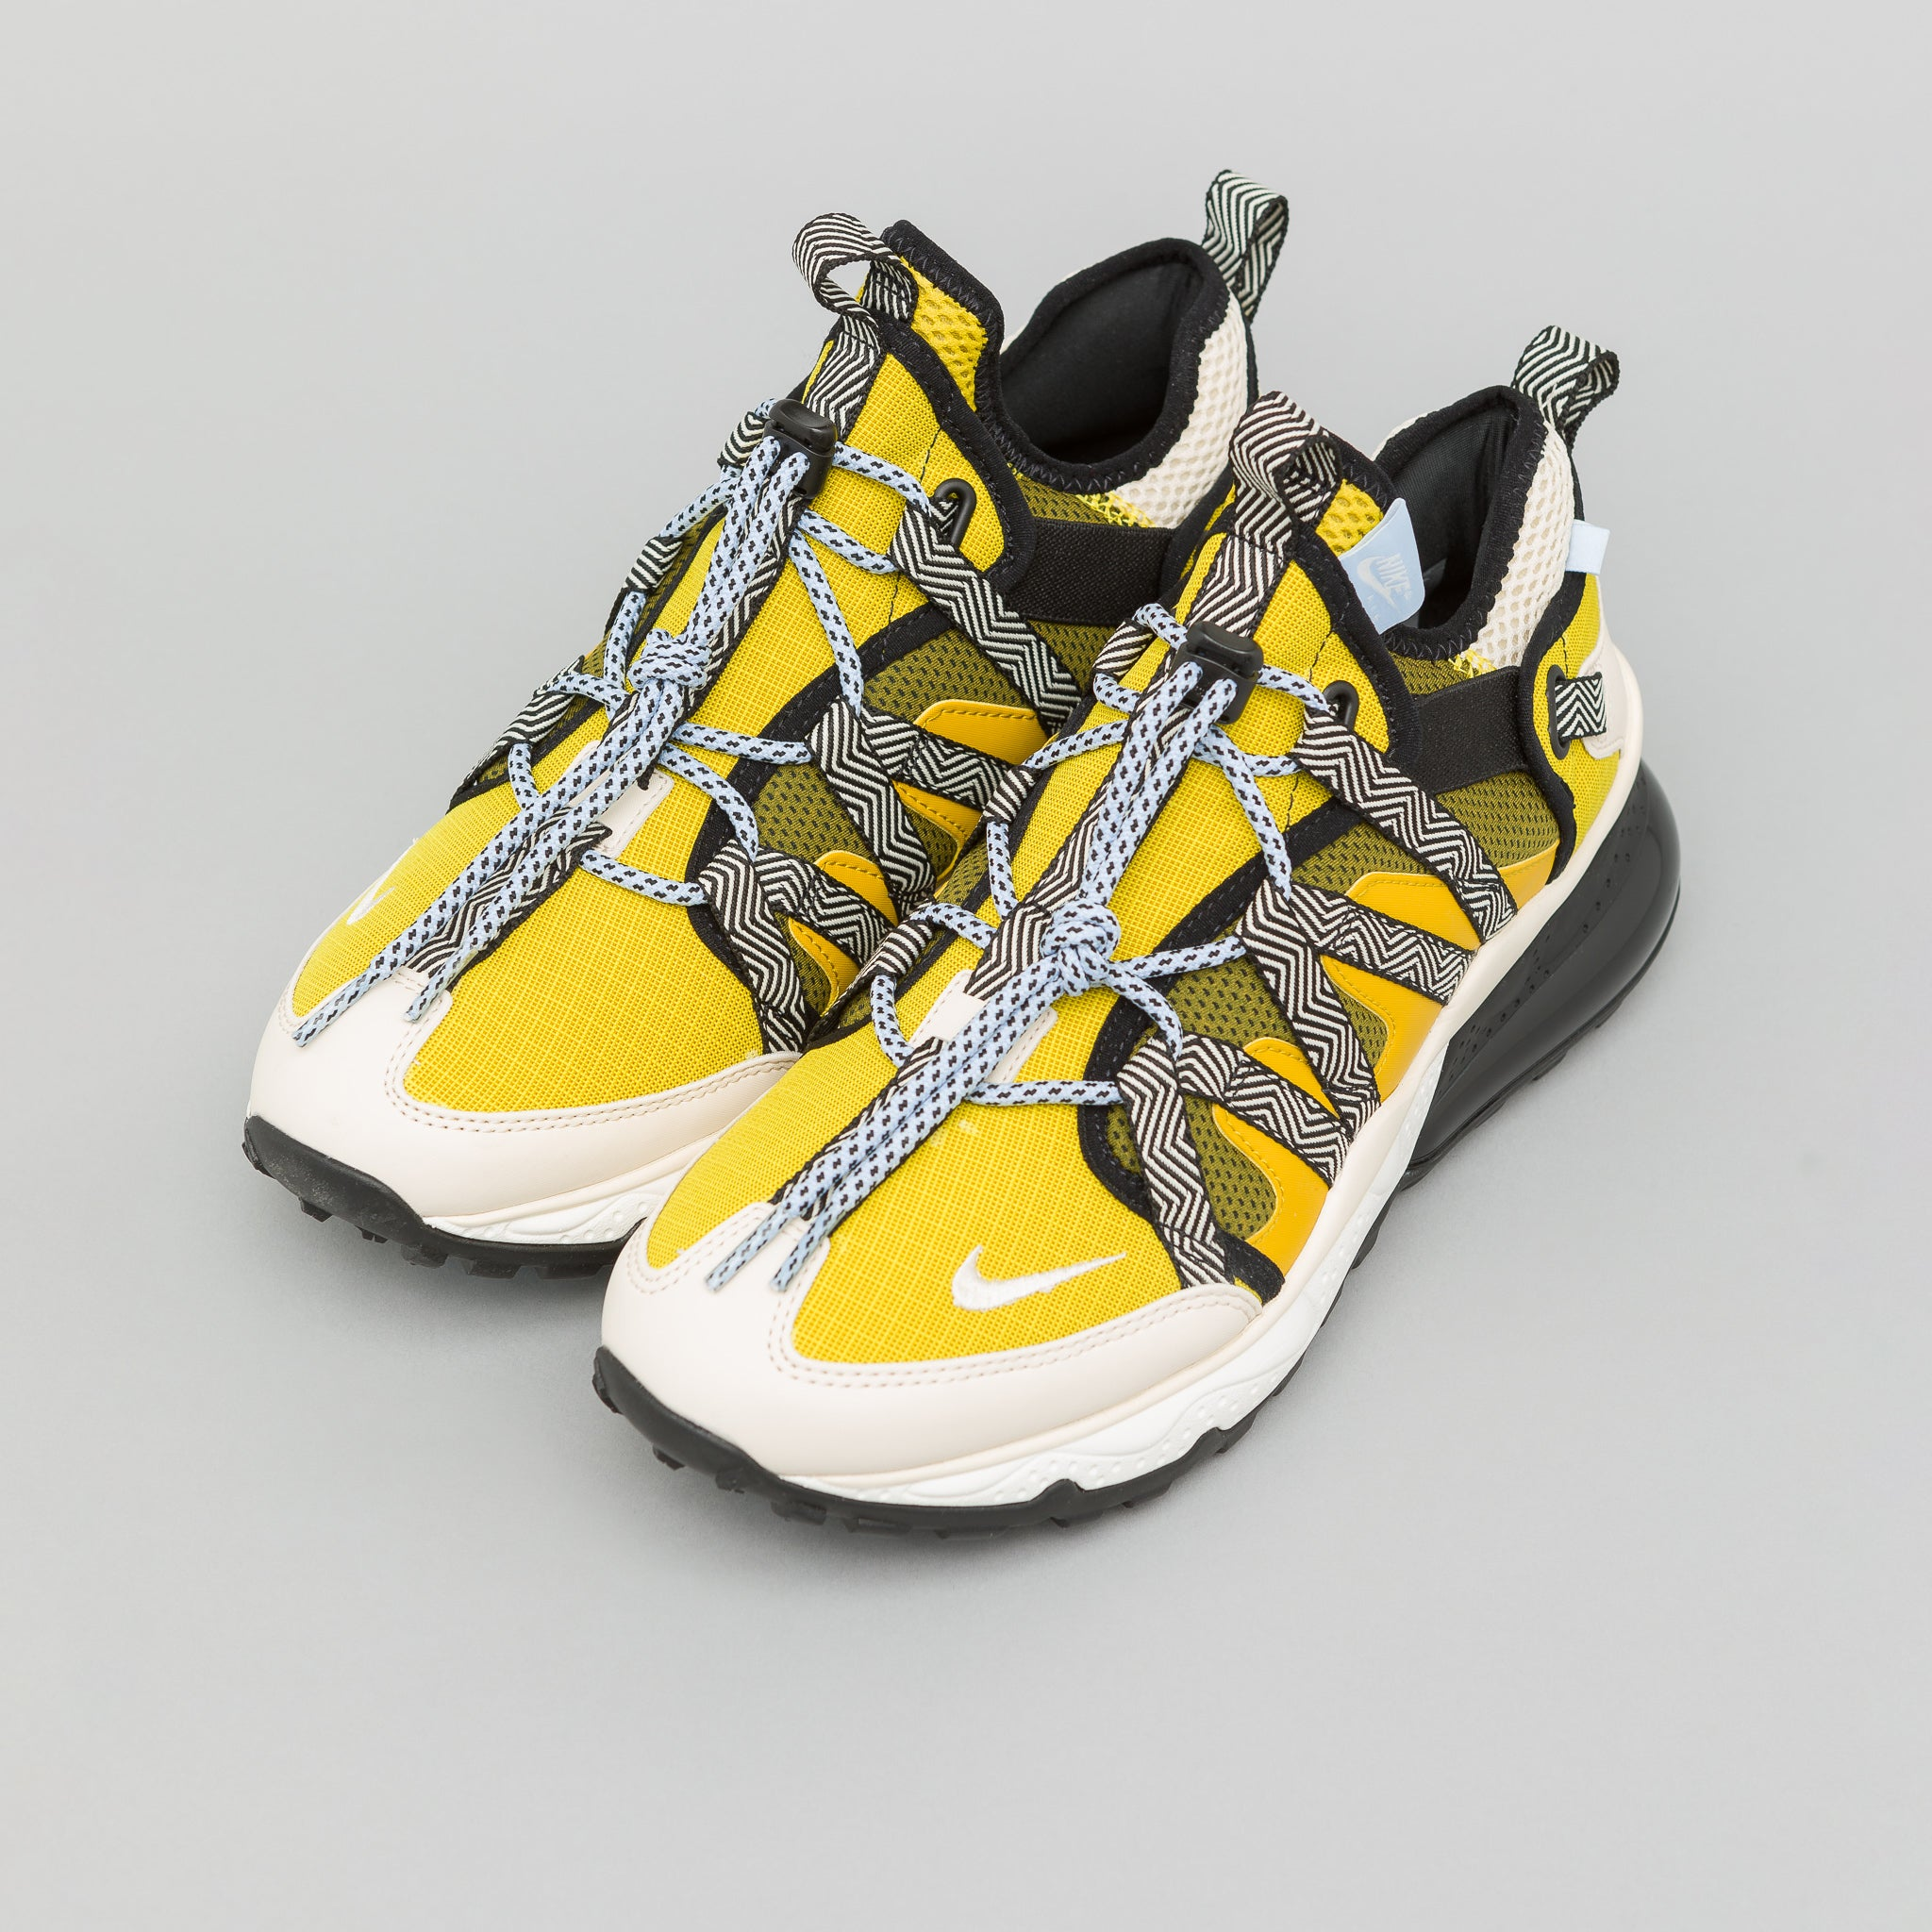 Air Max 270 Bowfin in Dark Citron/Light Cream